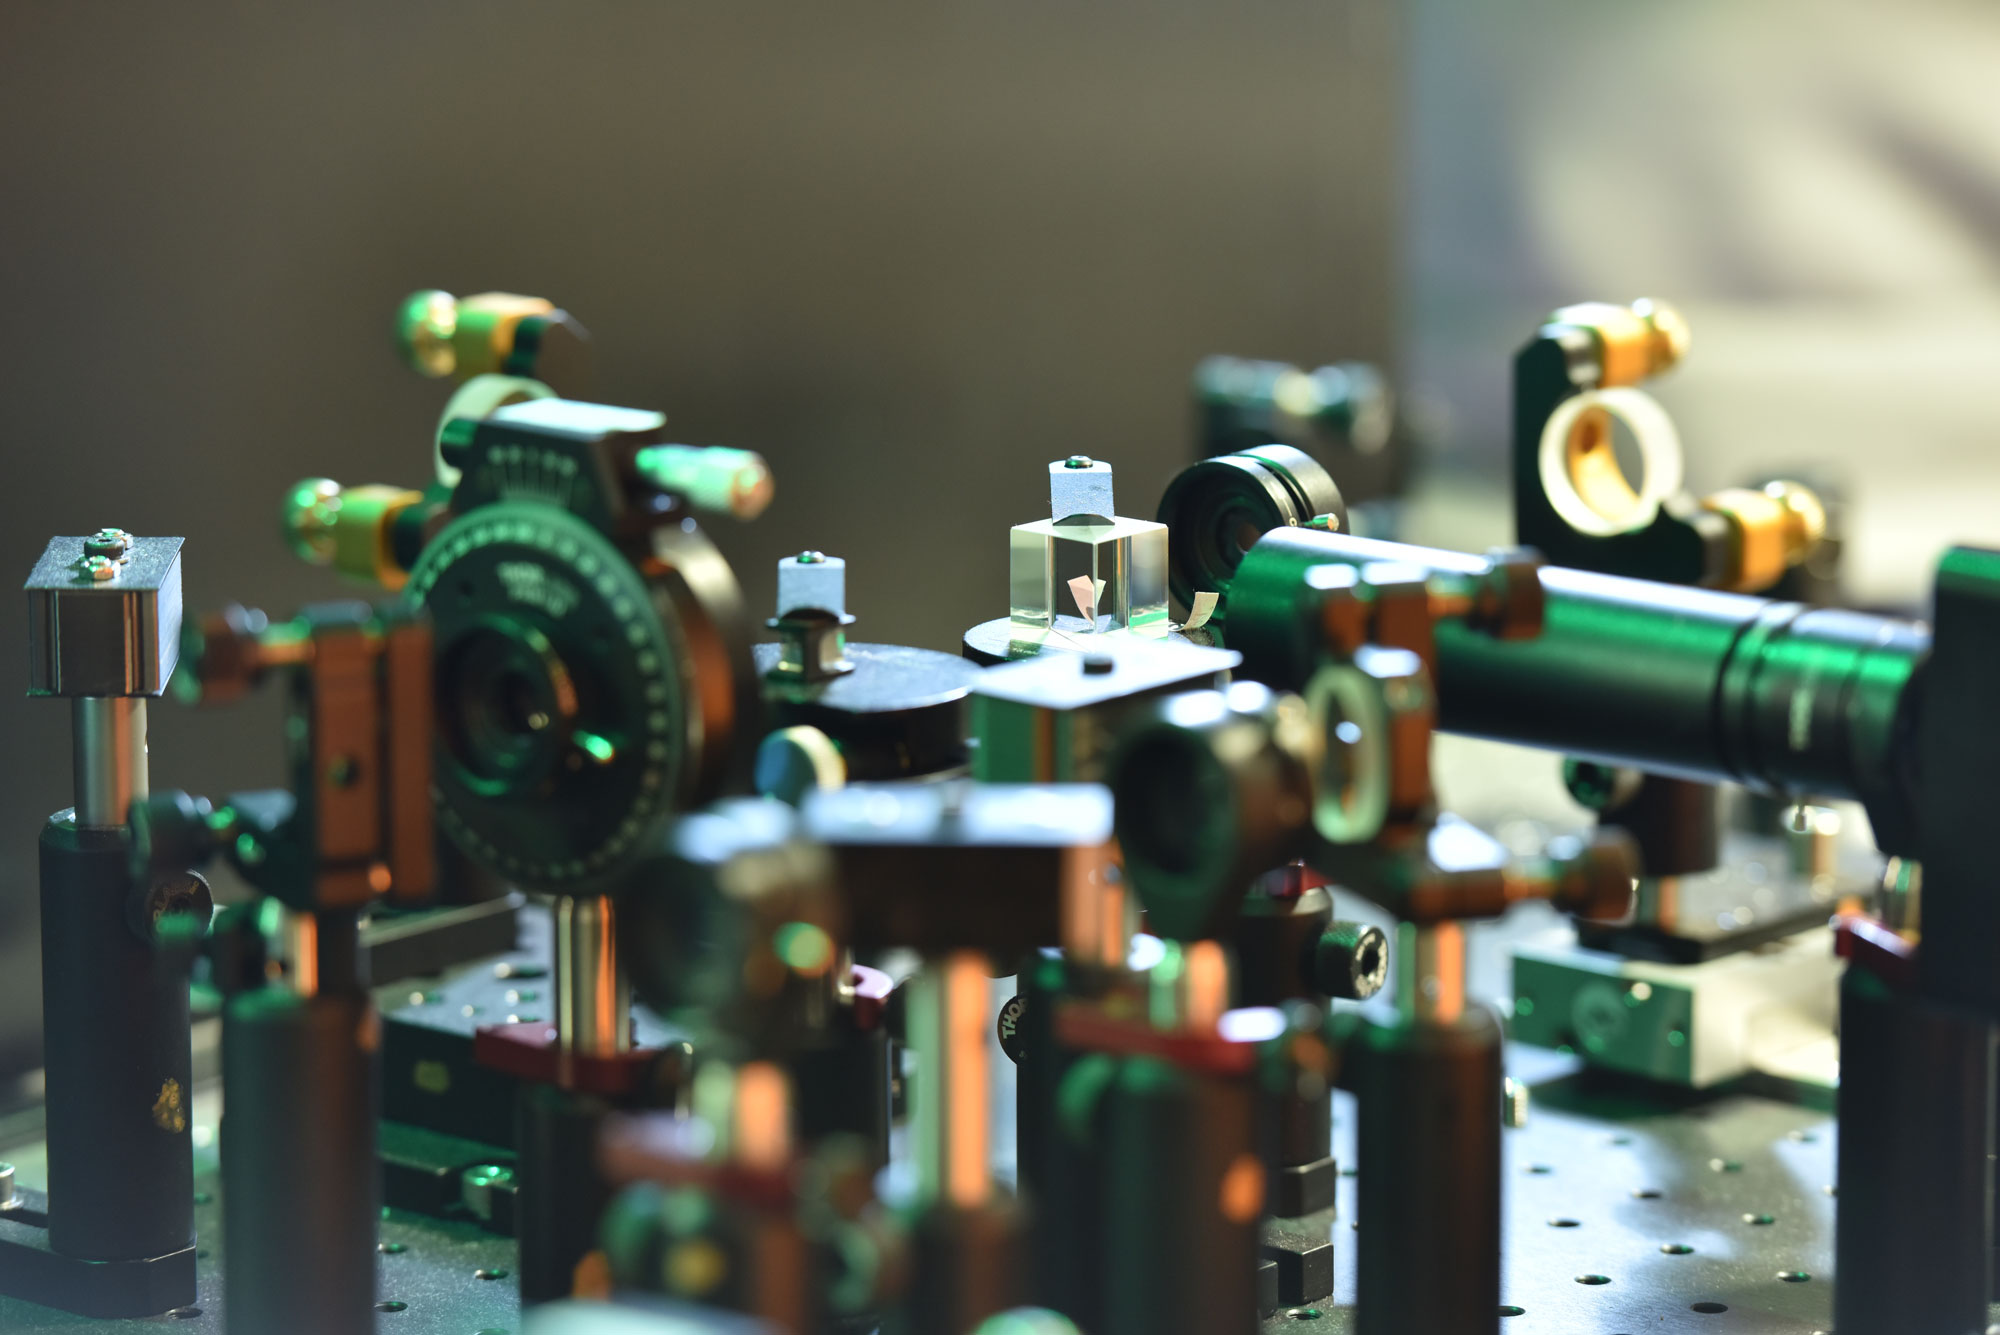 Optical equipment in a physics lab.